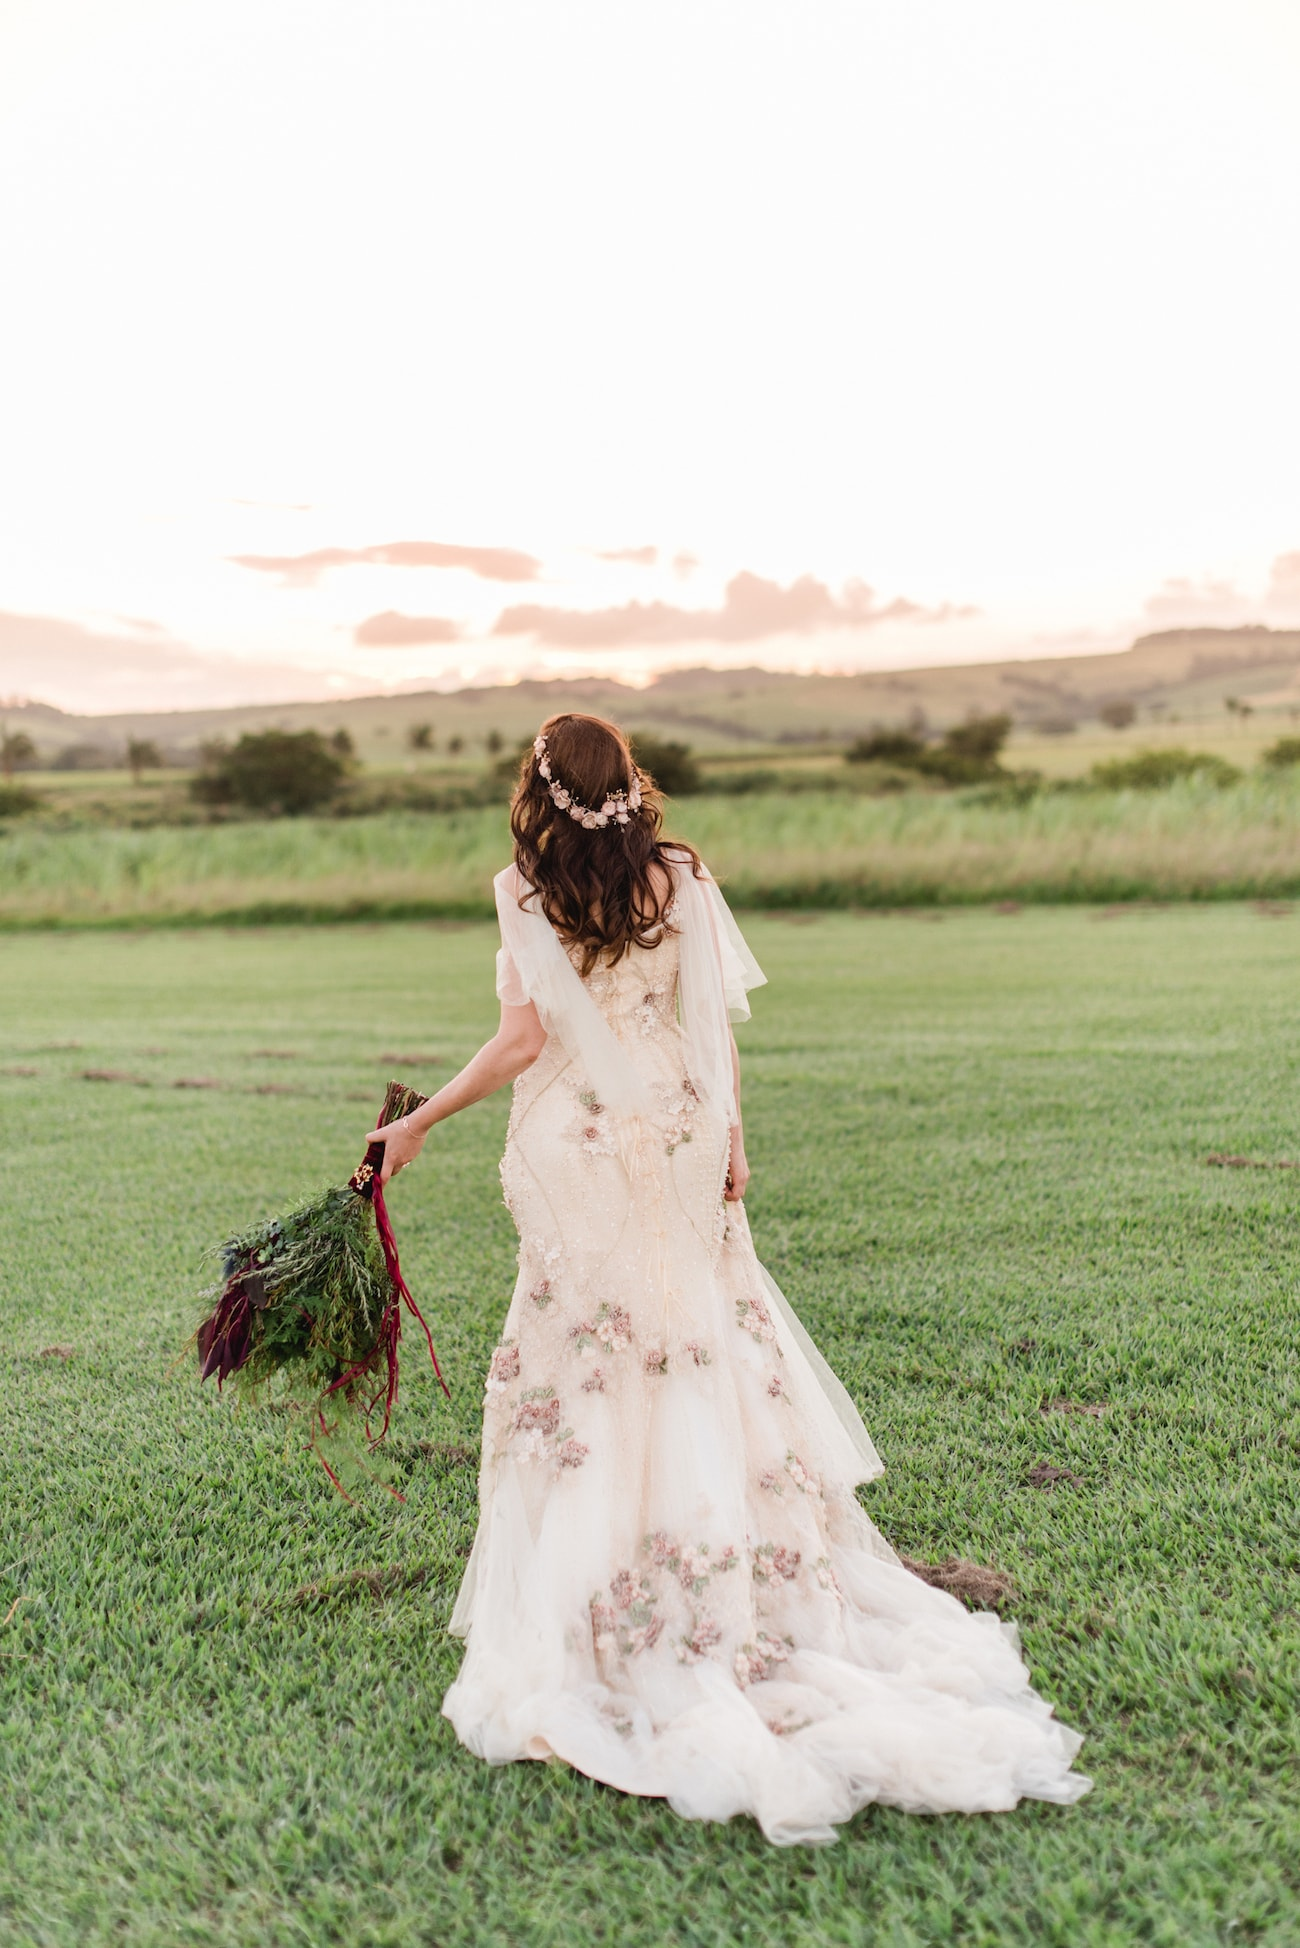 Incredible Floral McCarthyWolff Wedding Dress | Image: Roxanne Davison